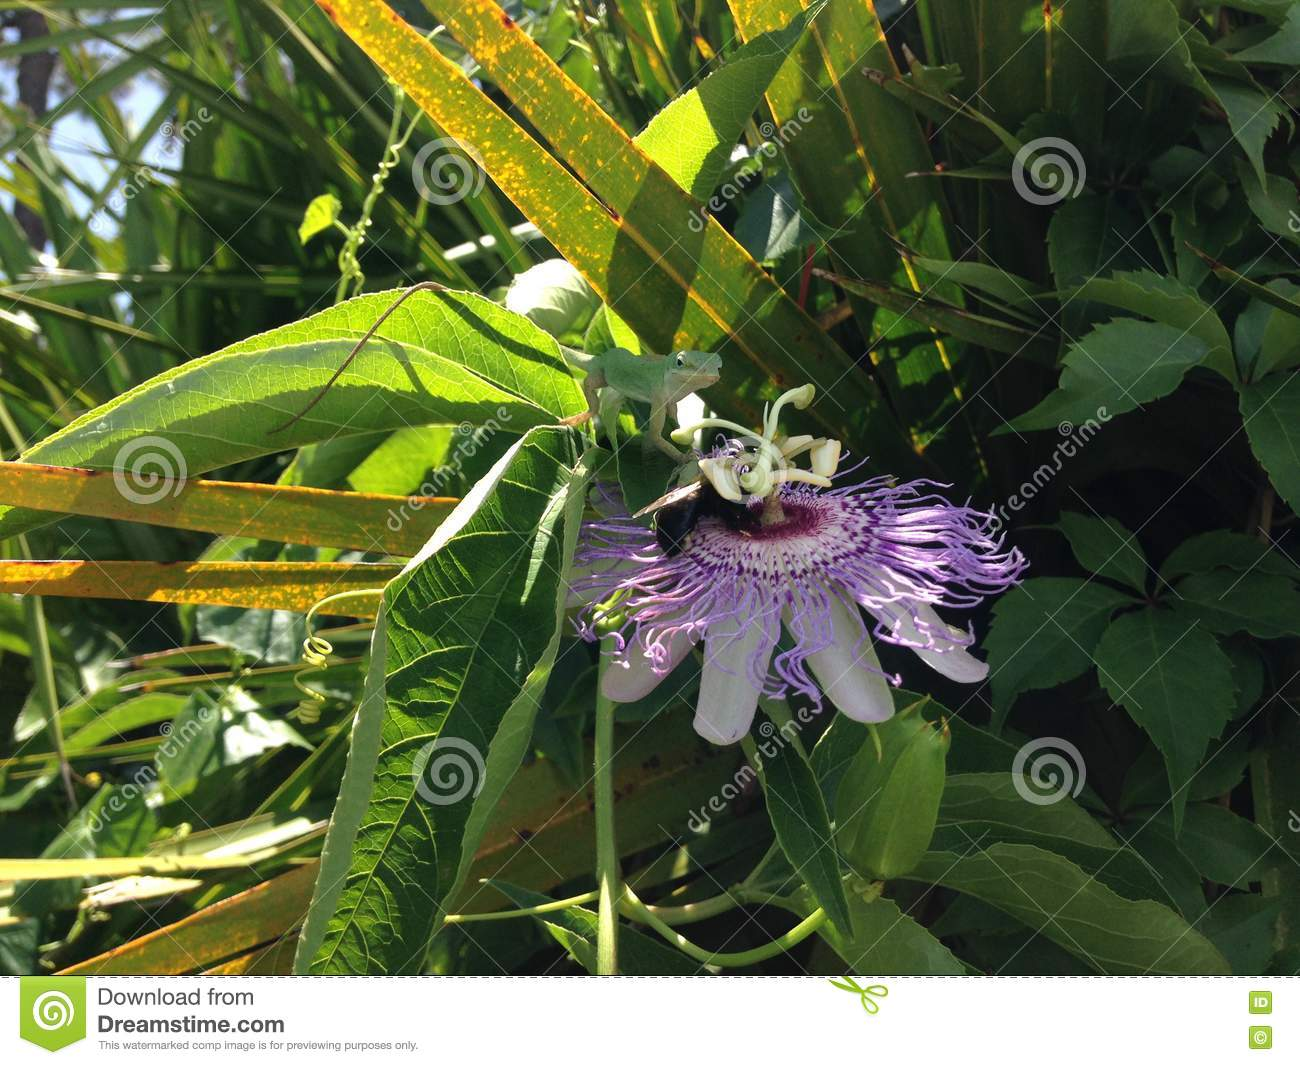 Anoles Carolinensis (Green Anole) Lizard Eating Passiflora (Passion Flower) Plant Blossom.